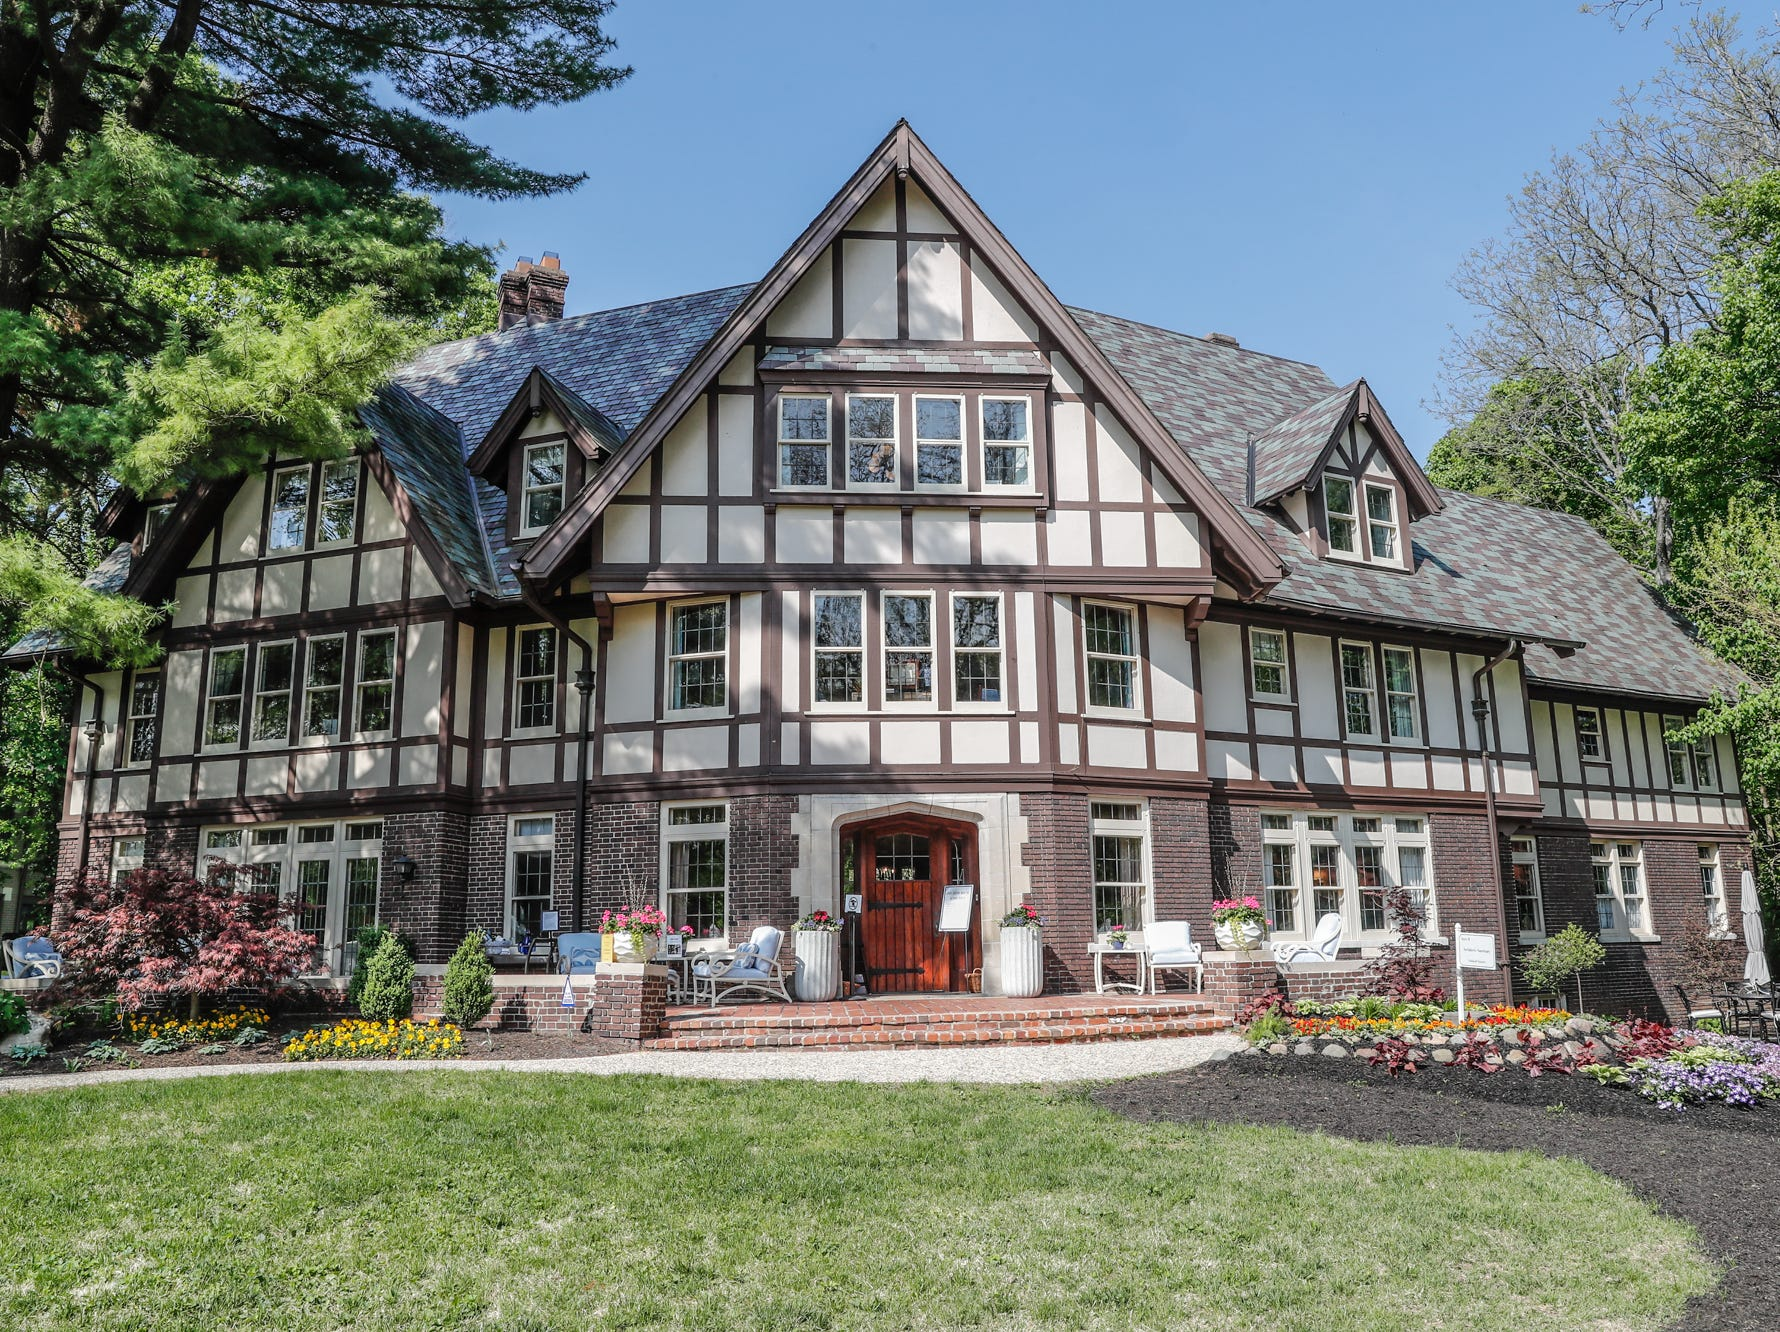 The 58th annual St. Margaret's Hospital Guild Decorators' Show House and Gardens, located at 4160 Washington Blvd., Indianapolis, on Wednesday, May 8, 2019. The Tudor Revival home, 9,163 square feet, was also a Decorator's Show House in 1980. Built in 1919 by Clark E. Mallery and Roberta Spellman Mallery, who was a cofounder of the American Garment Company.